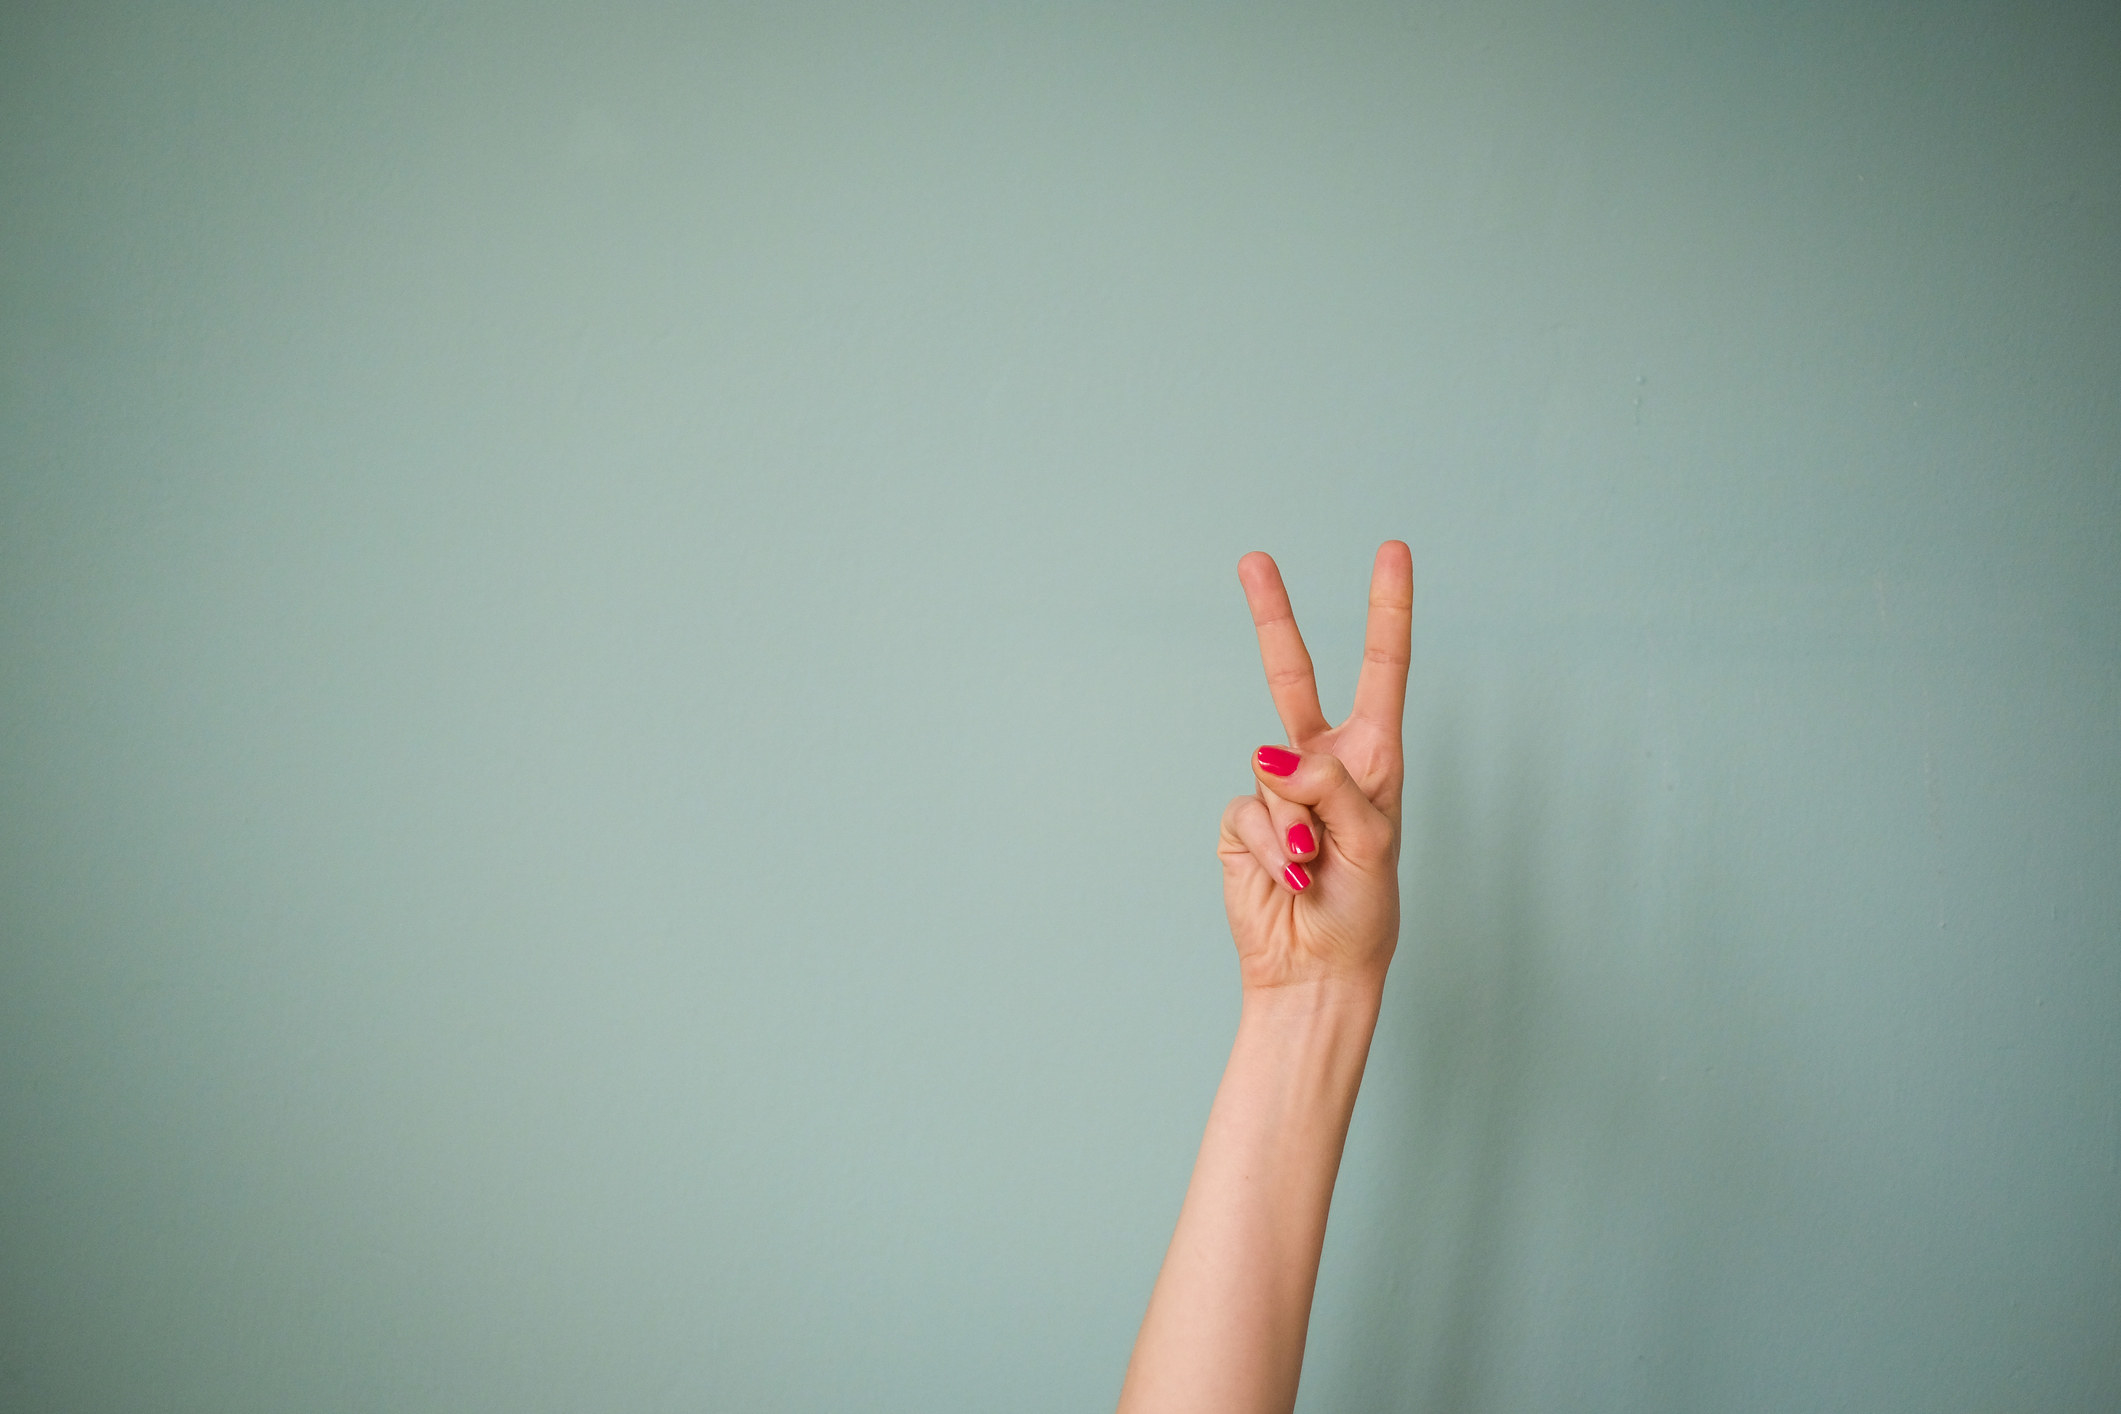 A person holding the peace sign with her nails painted red against a mint colored call